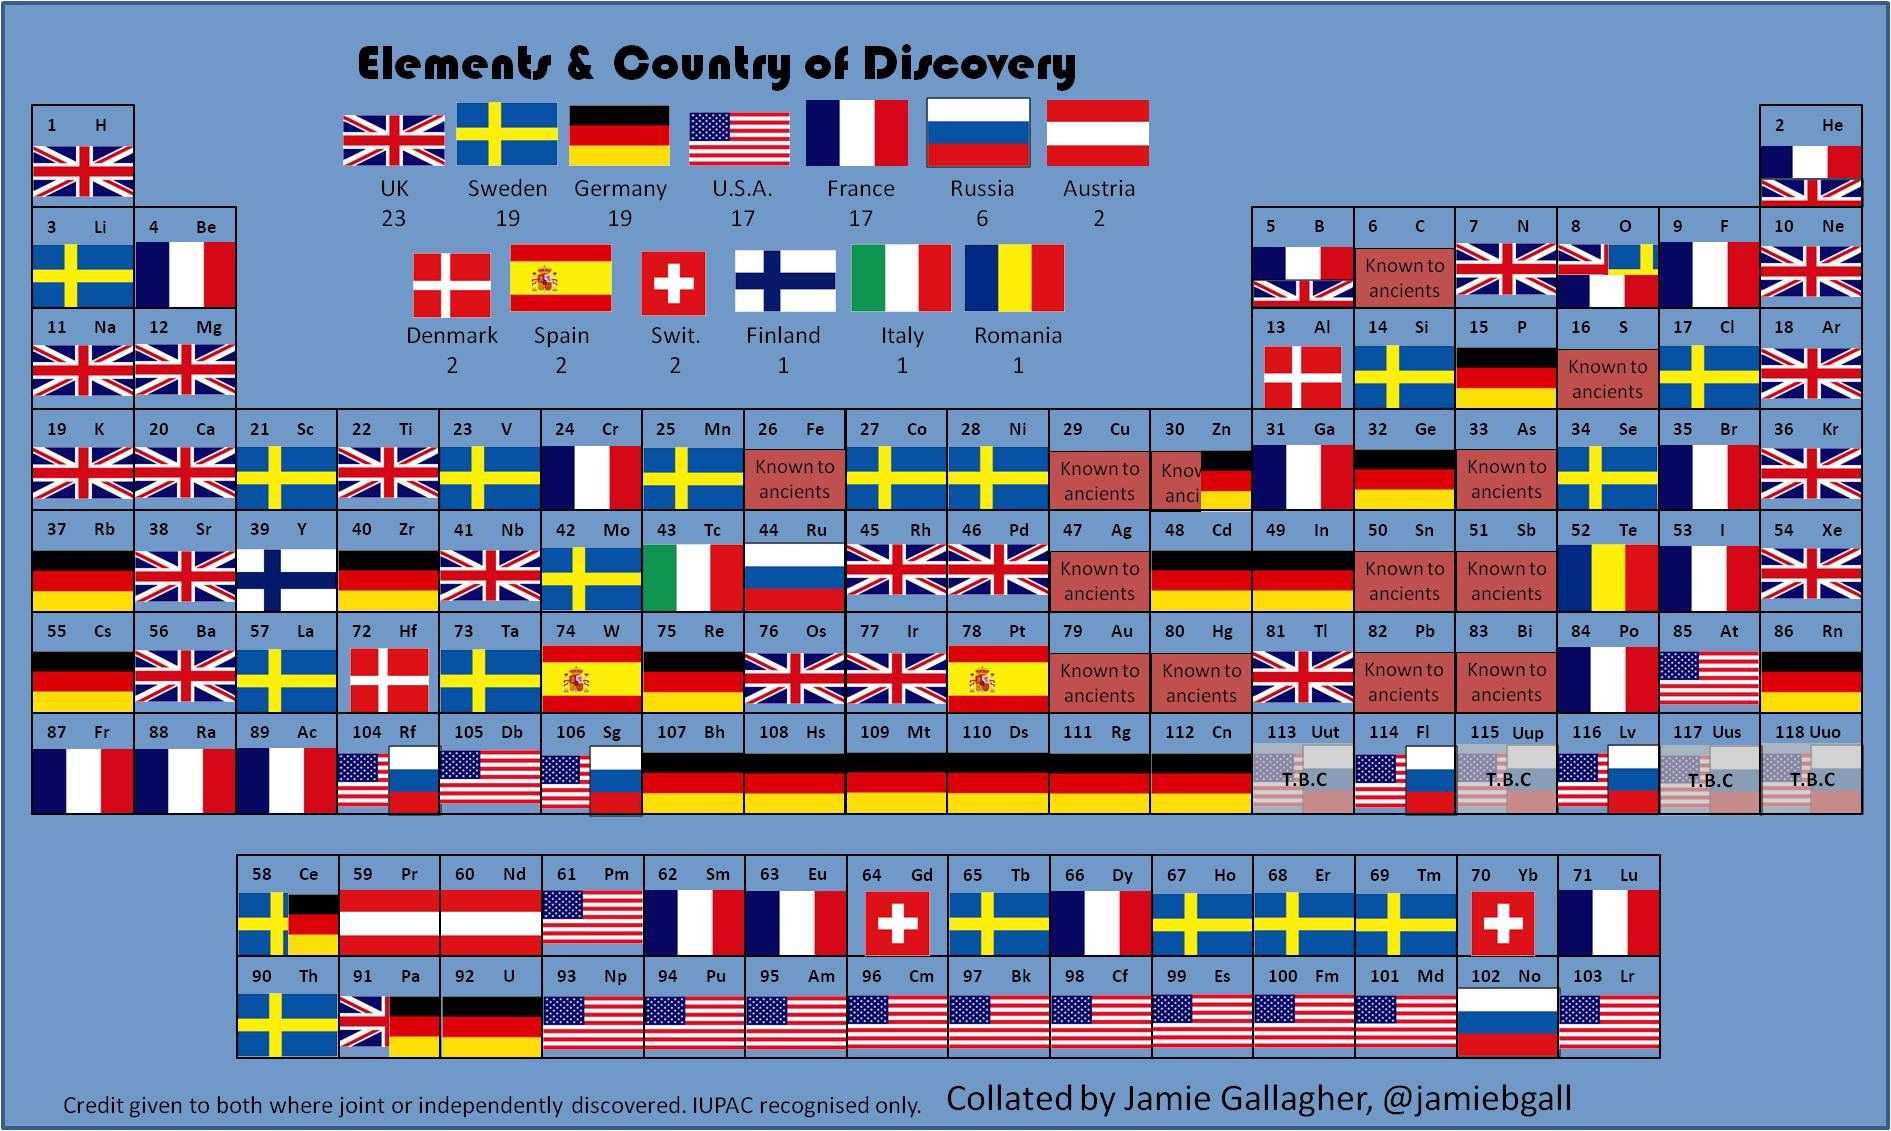 The periodic table of countries of discovery of elements